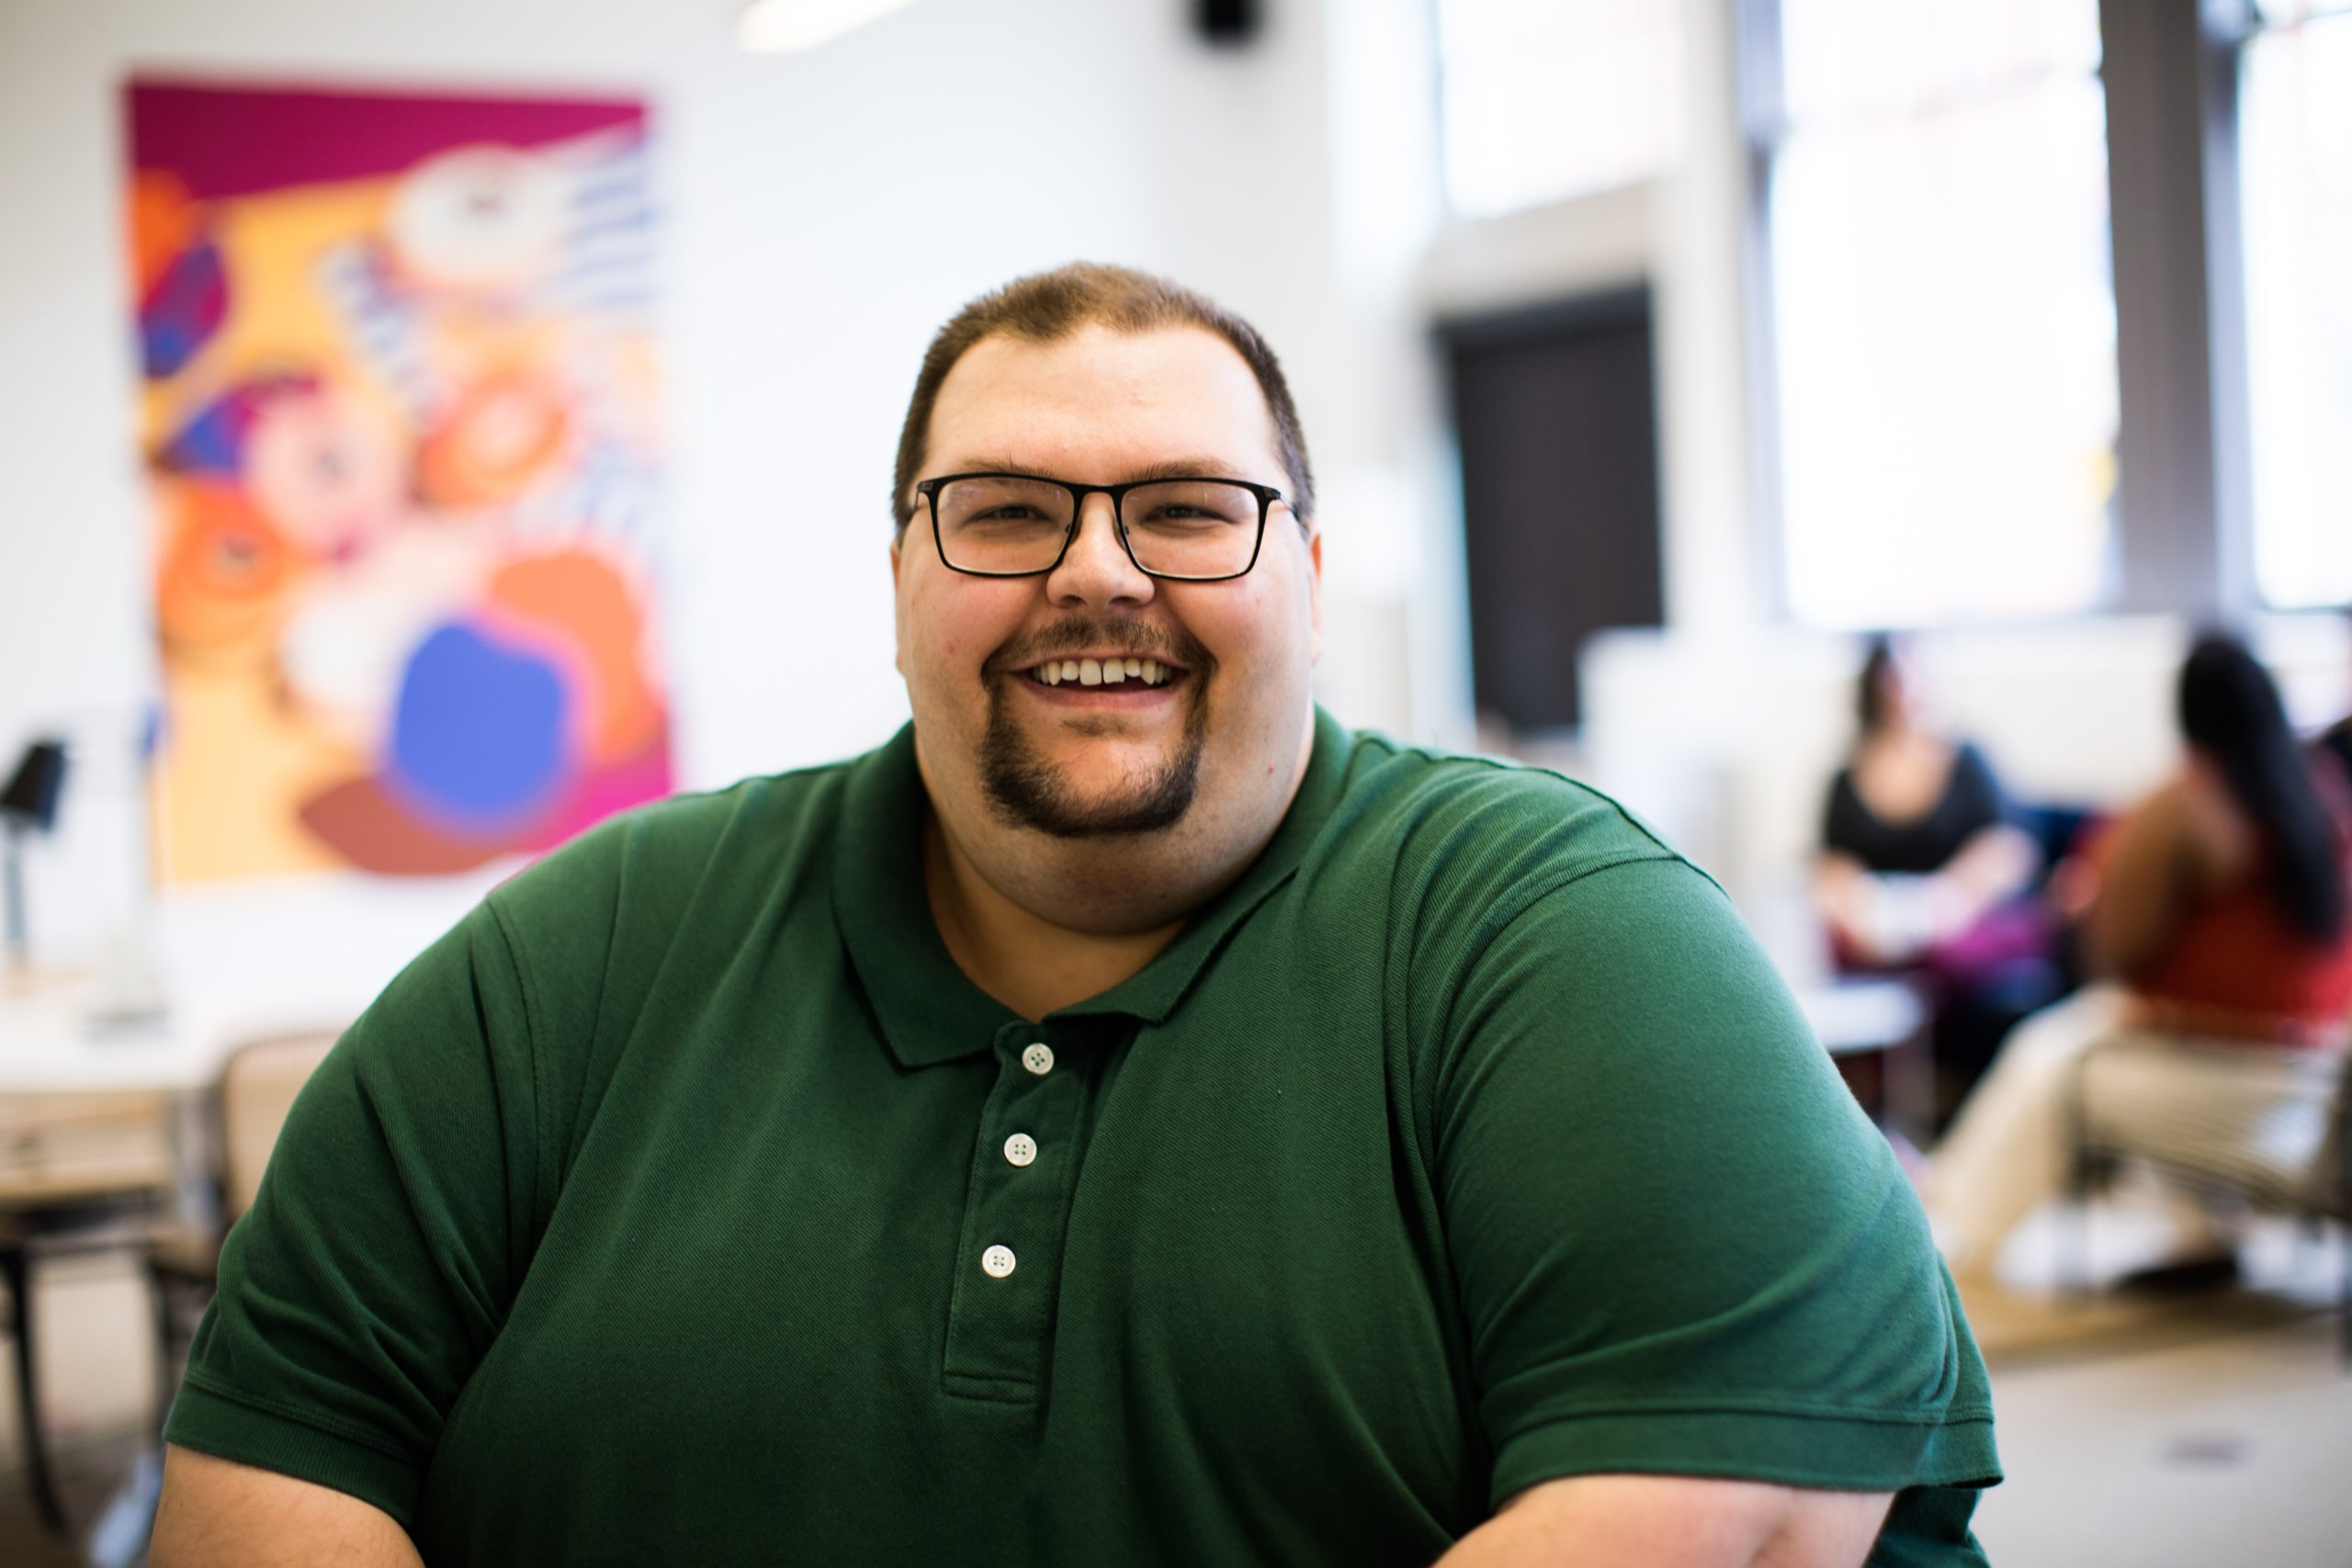 plus size man great smile